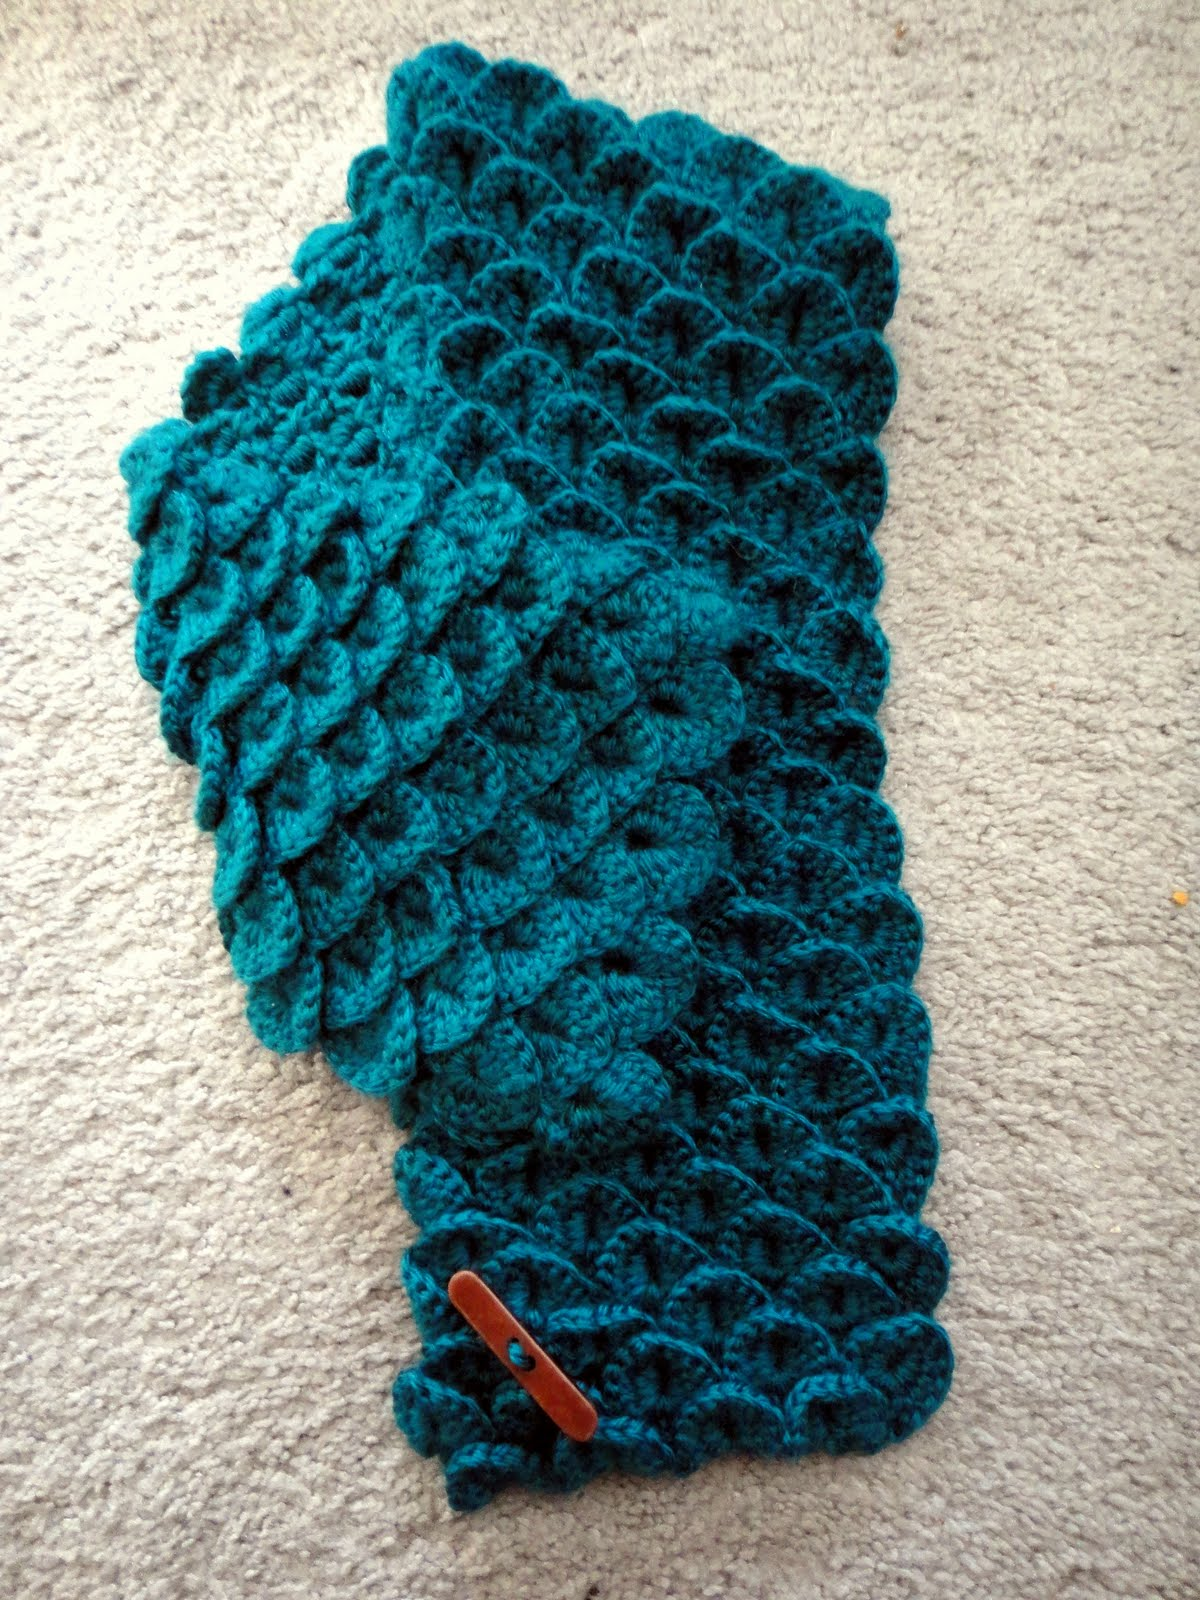 Knitting Pattern Alligator Scarf : Yarn Muse: Crocodile Stitch